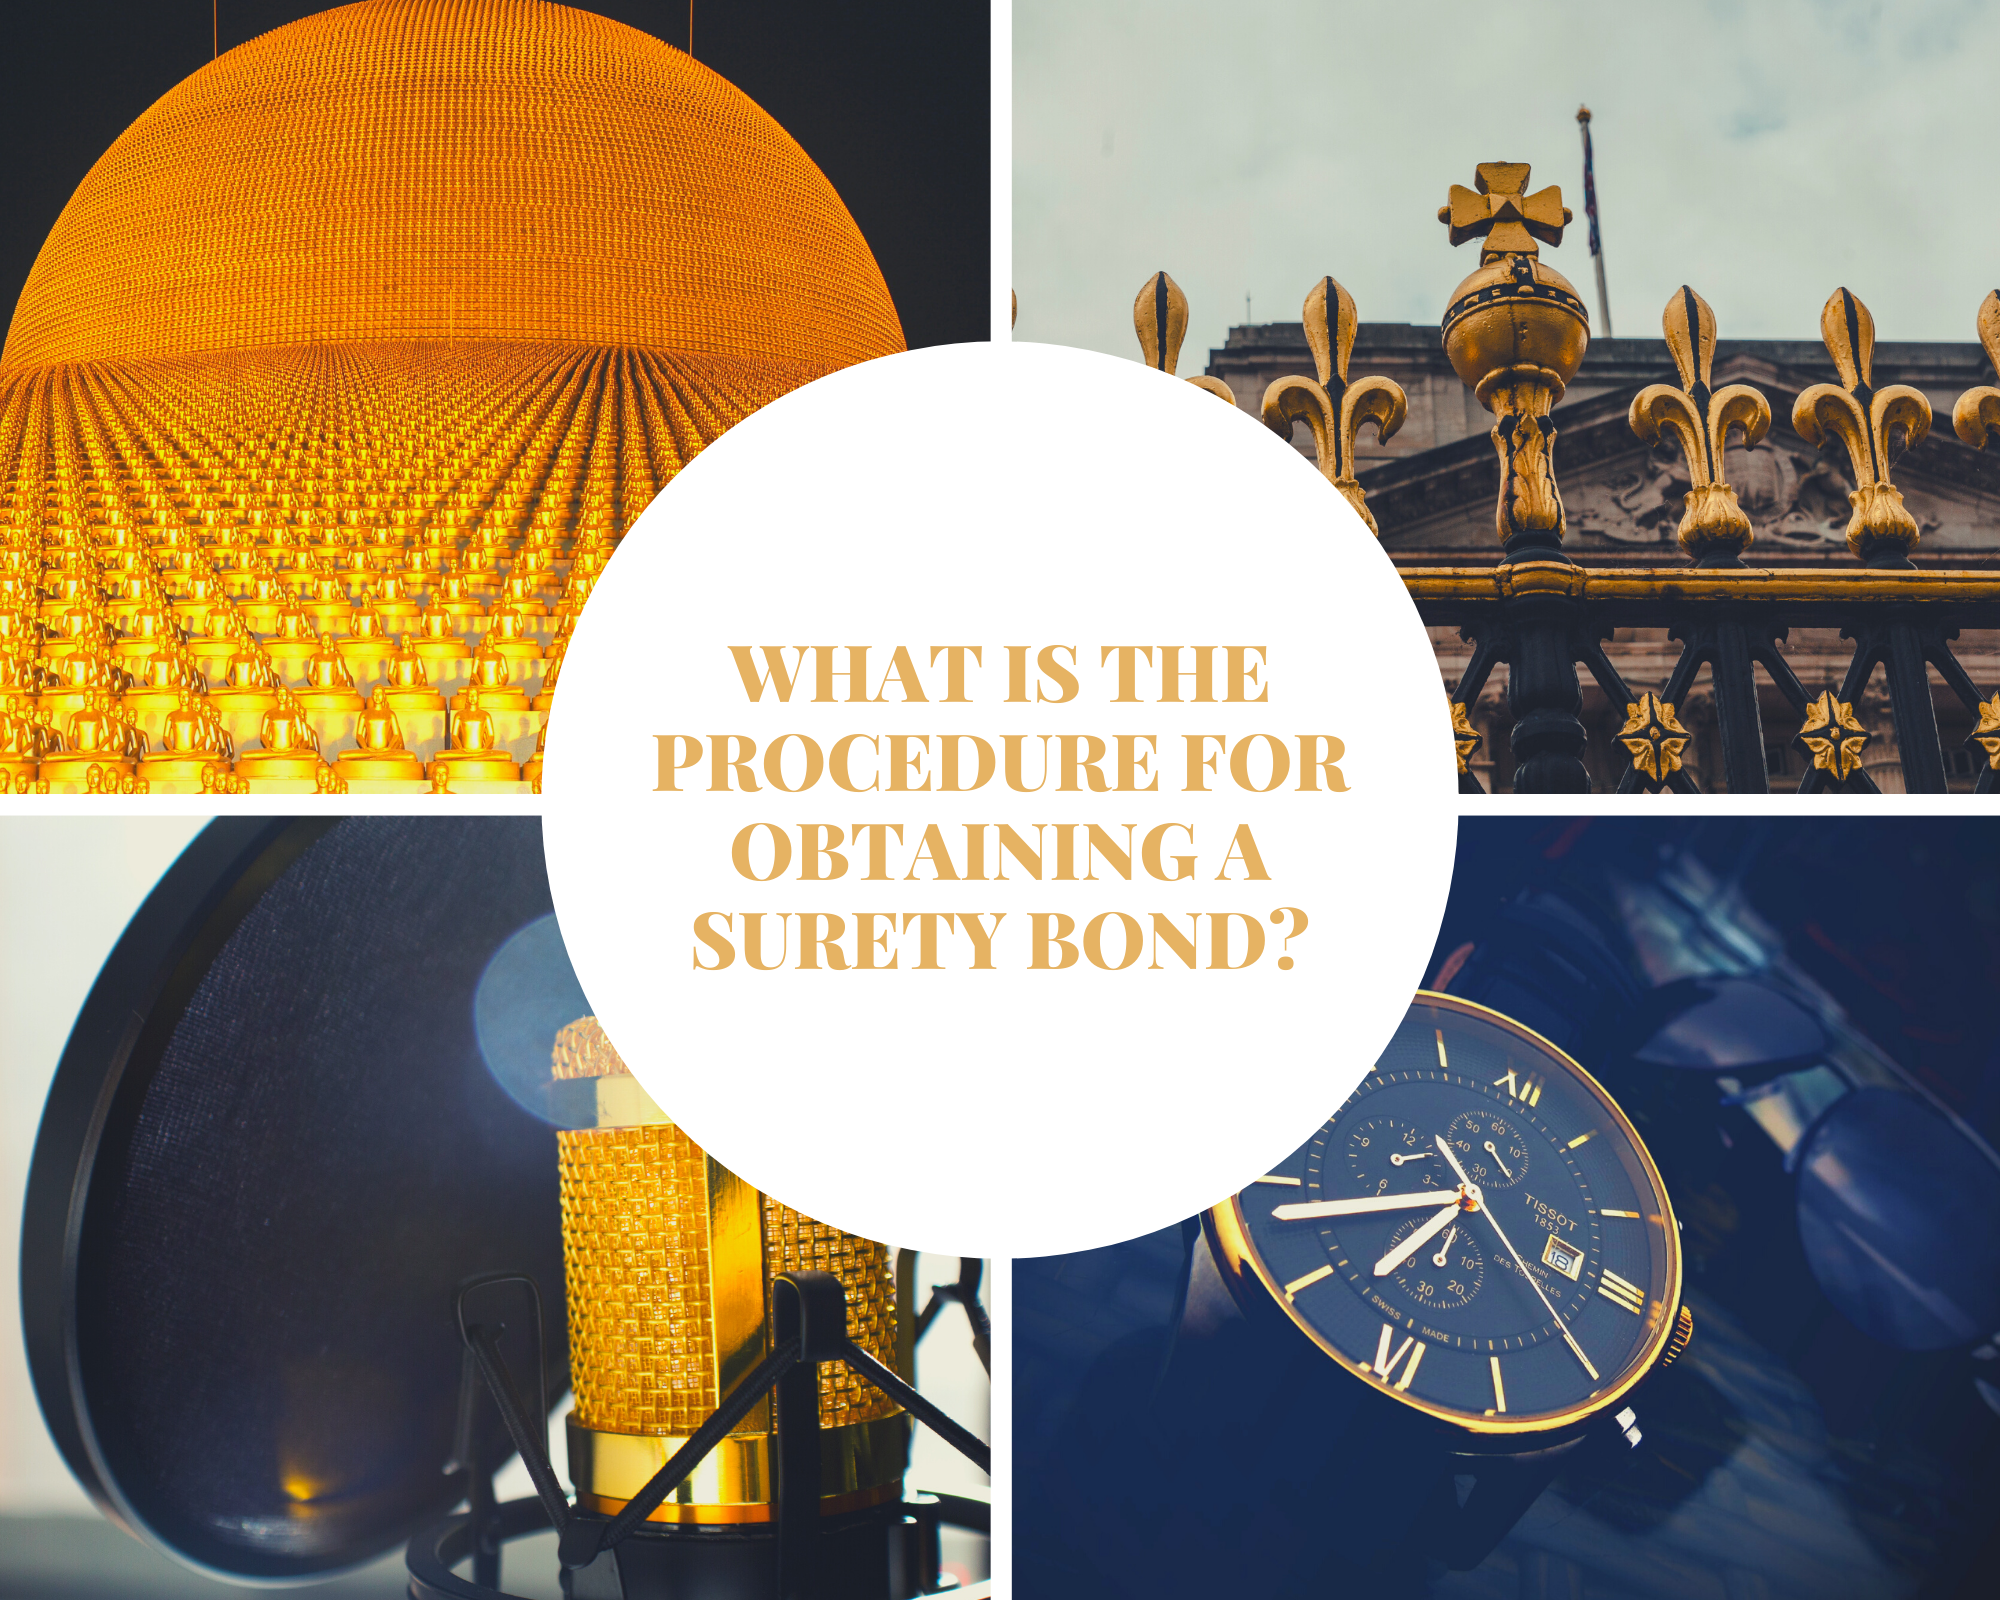 surety bond - what is the cost of obtaining a surety bond - collage in blue and yellow theme